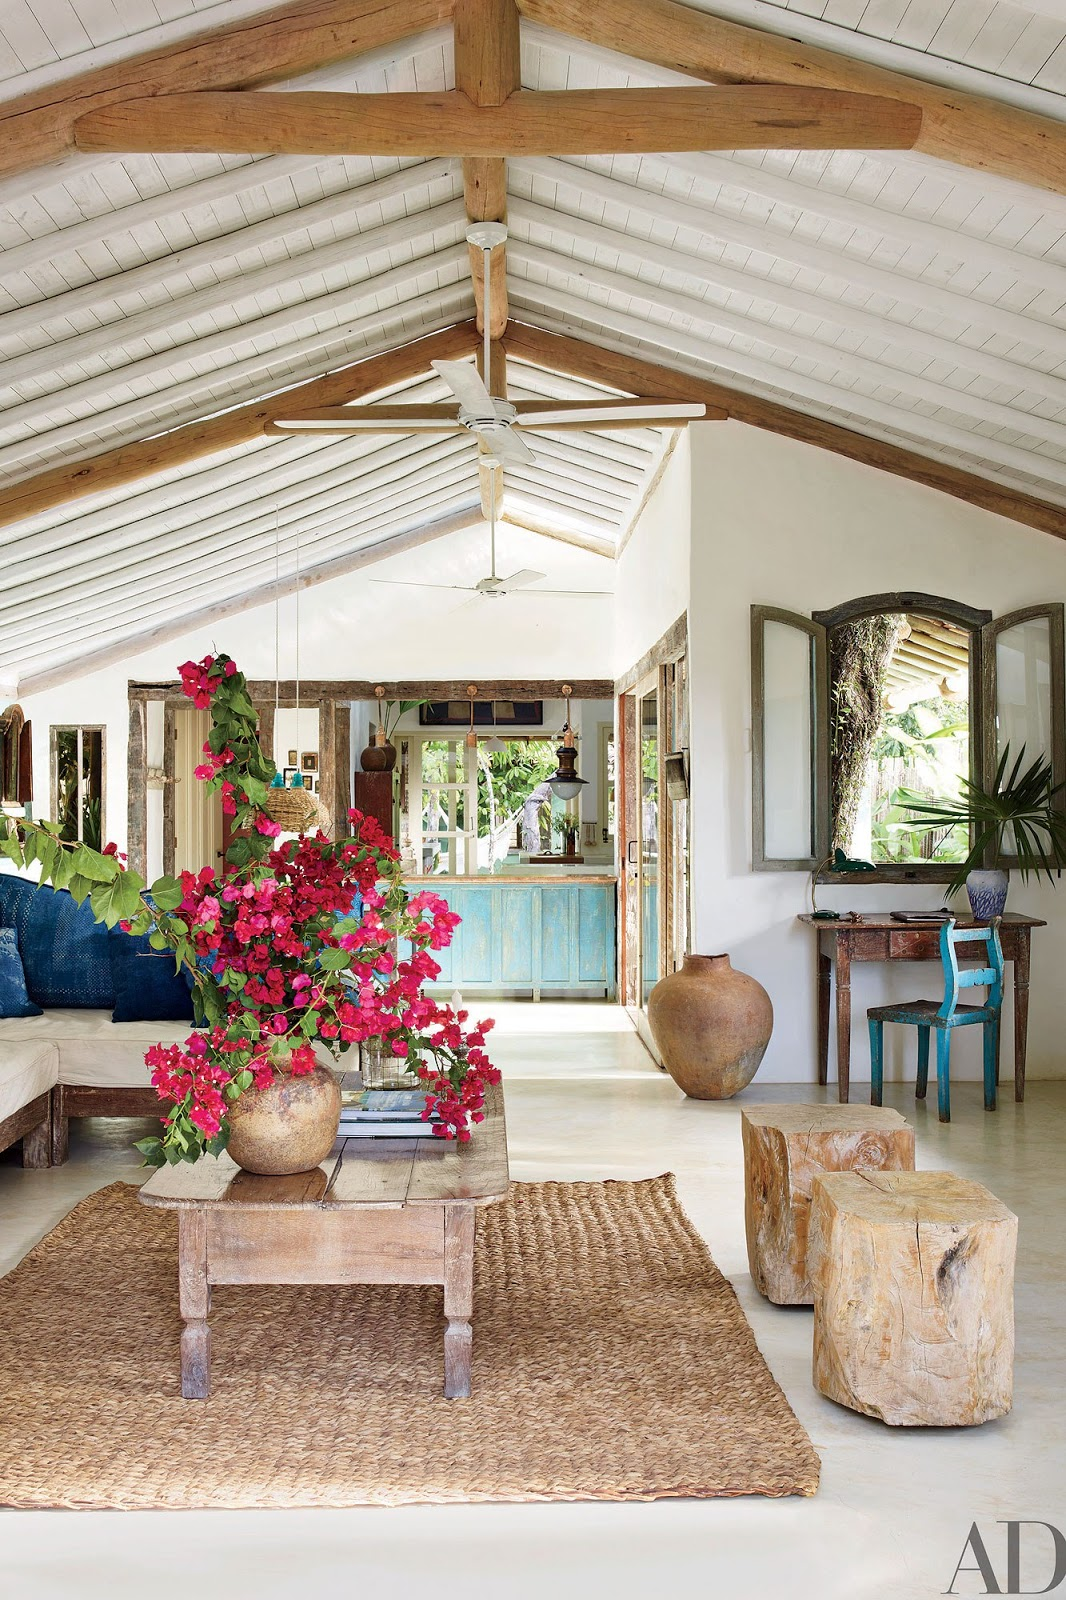 Anderson Cooper S Brazilian Rest House Is A Vintage And Rustic Dream